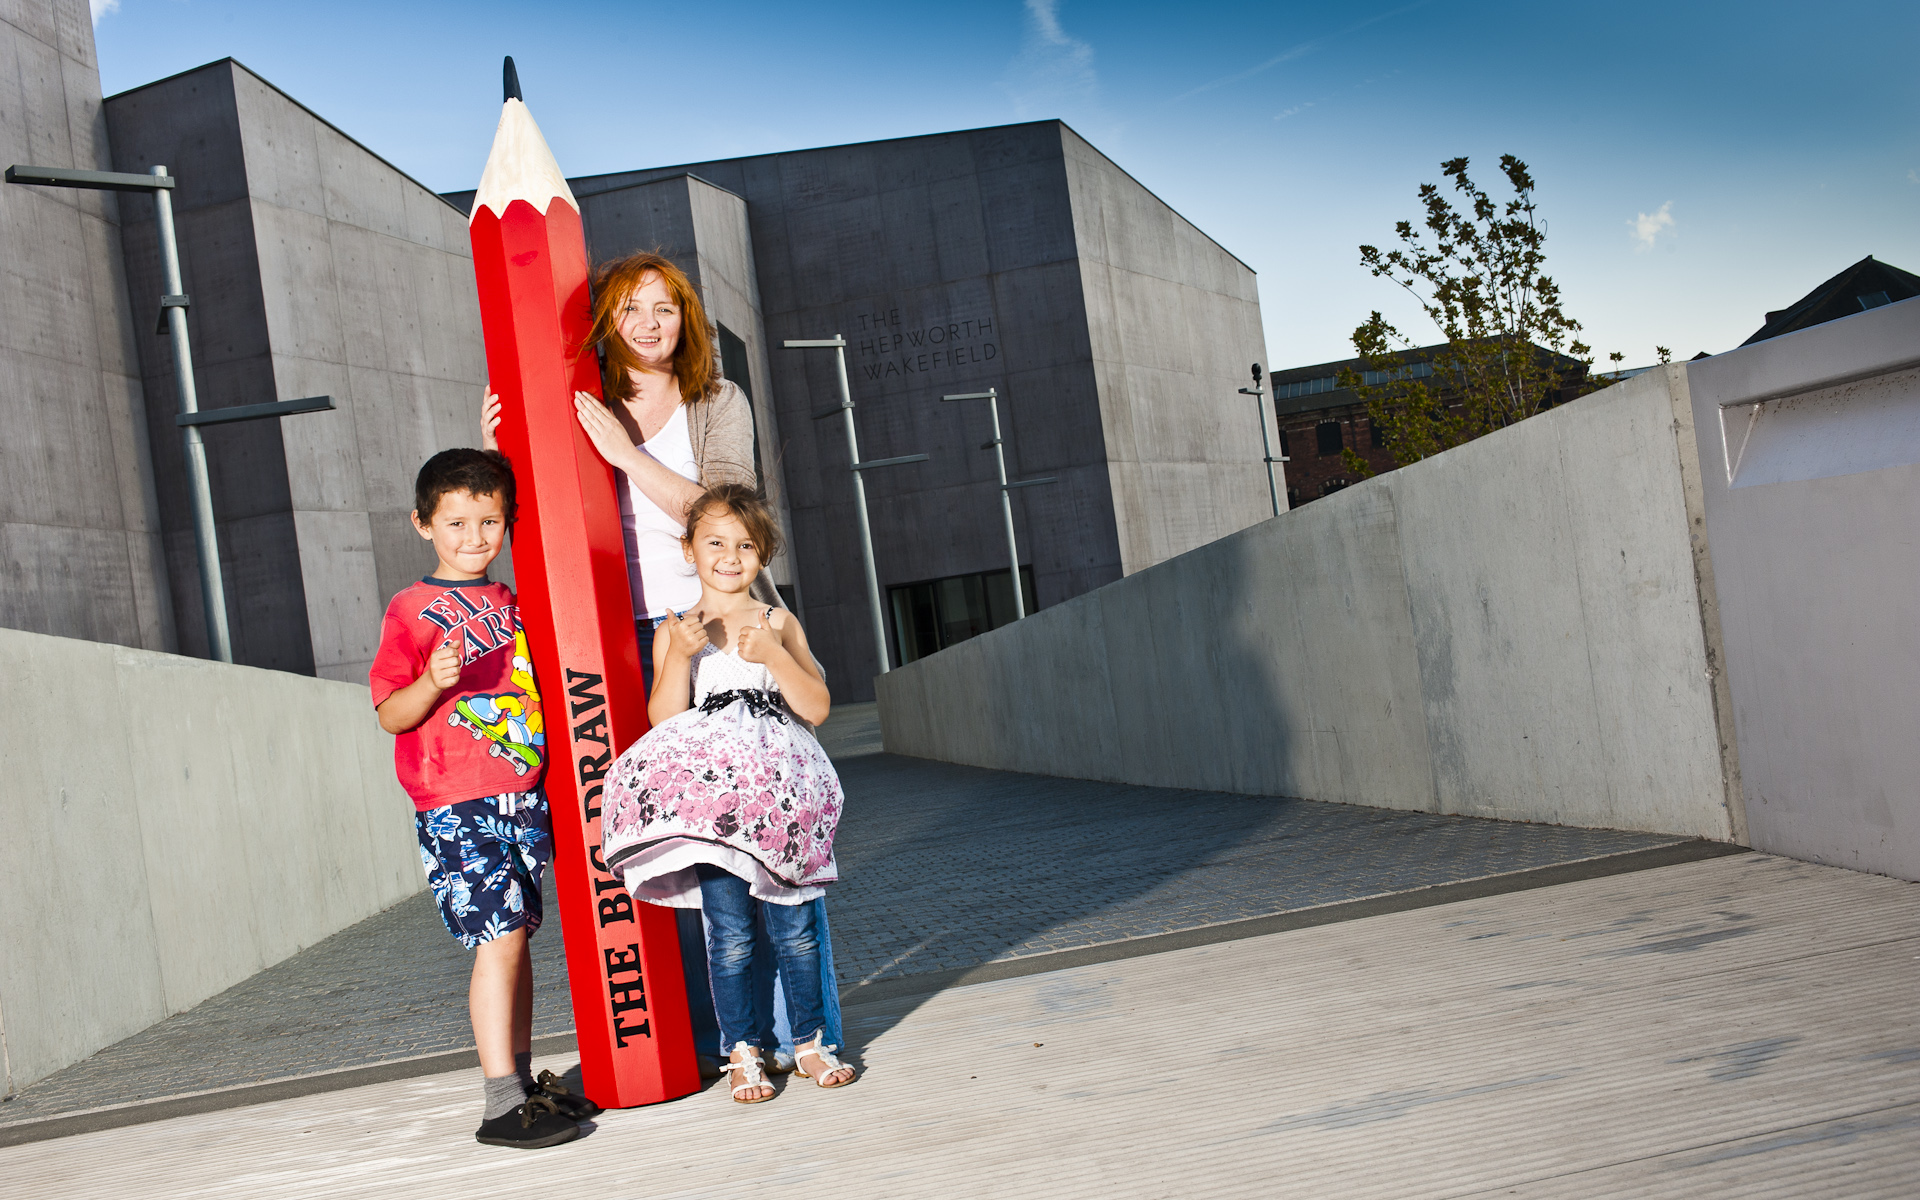 Children and teacher with giant red pencil at Hepworth Wakefield gallery